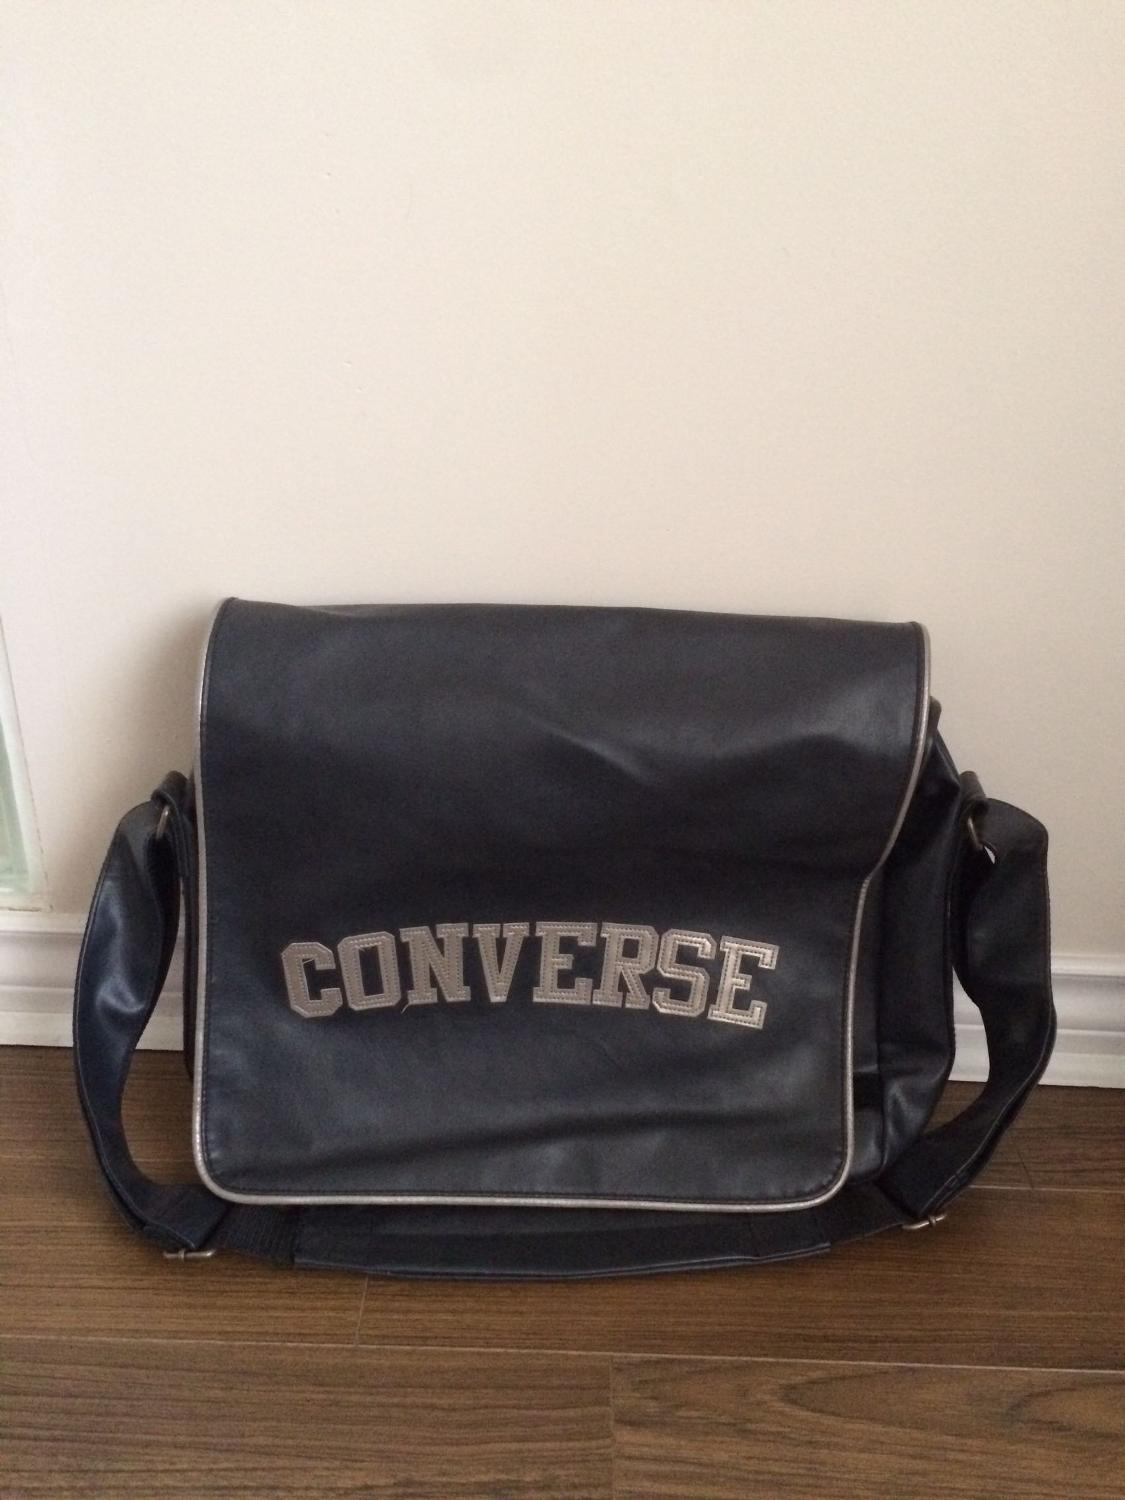 abf87bd2a3c Best Grey Converse Messenger Bag for sale in Vancouver, British Columbia  for 2019